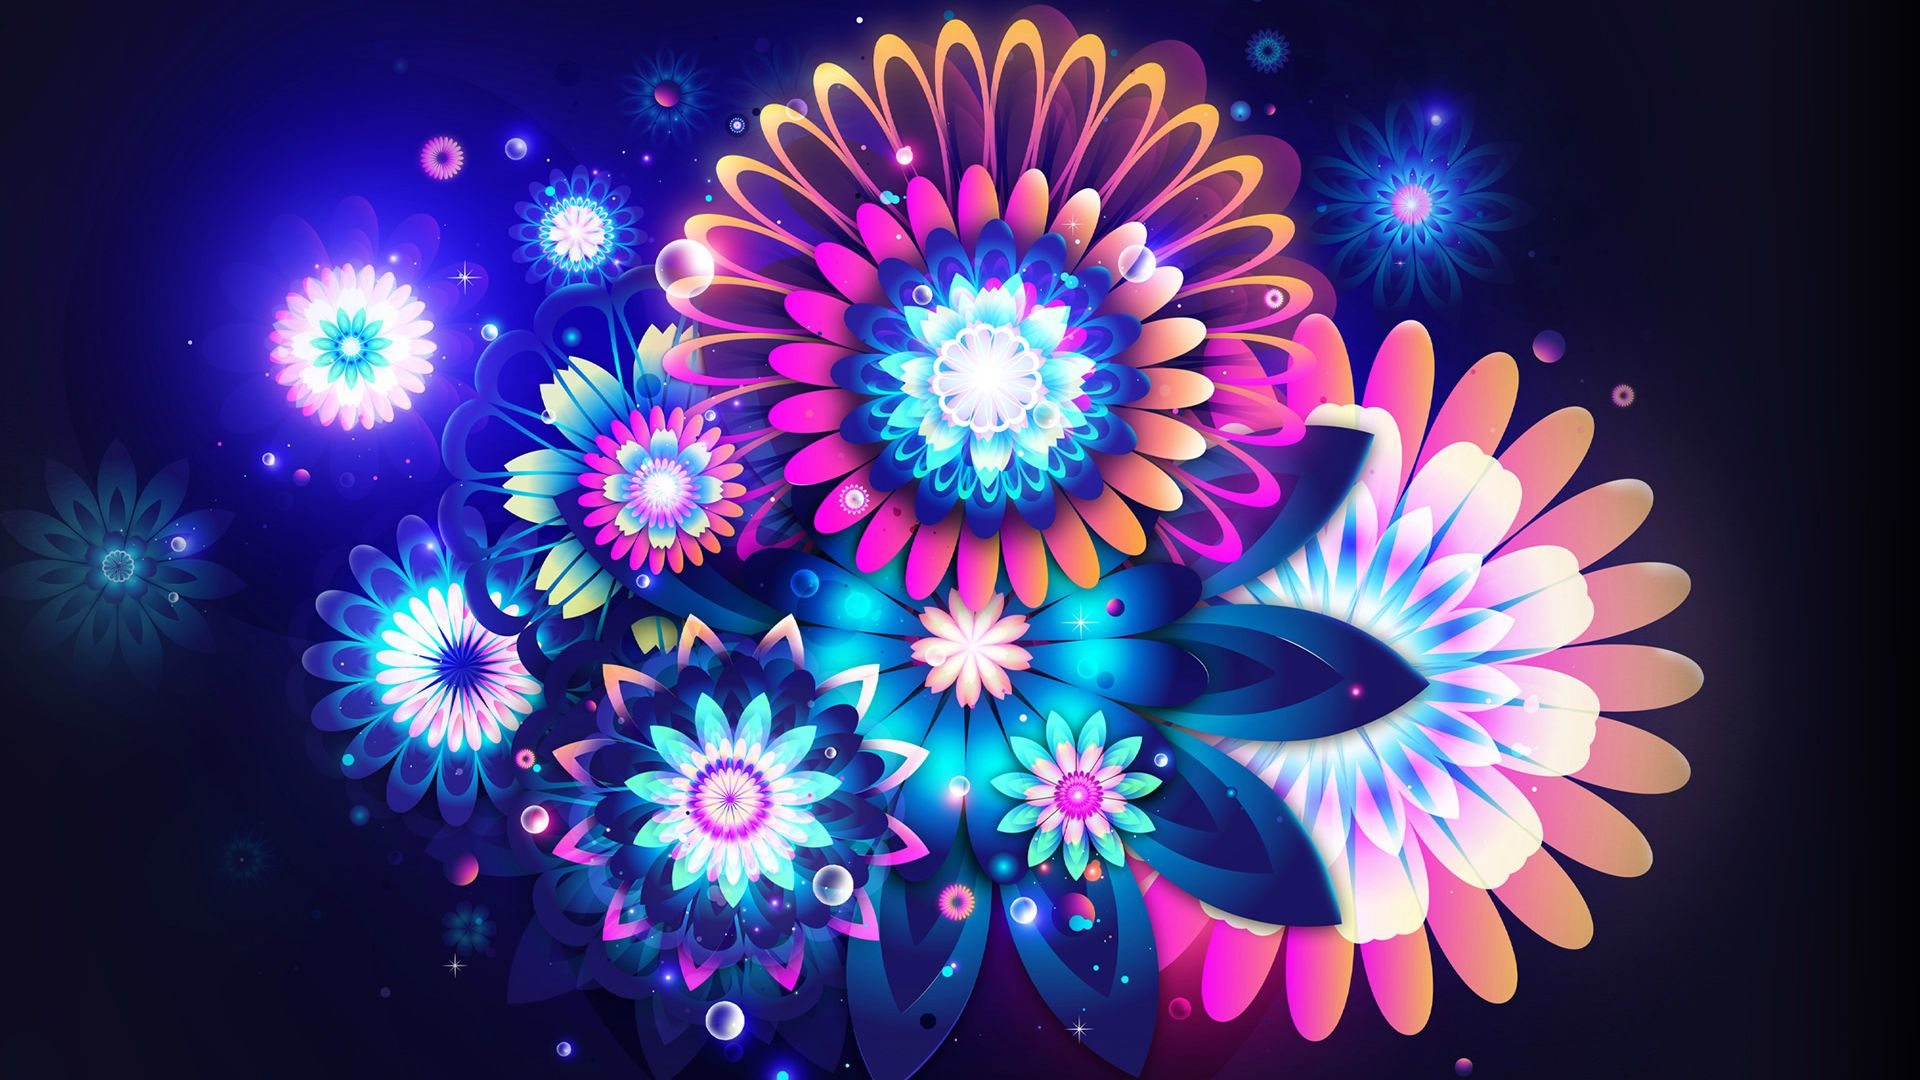 Abstract Neon Flowers Wallpaper 3266